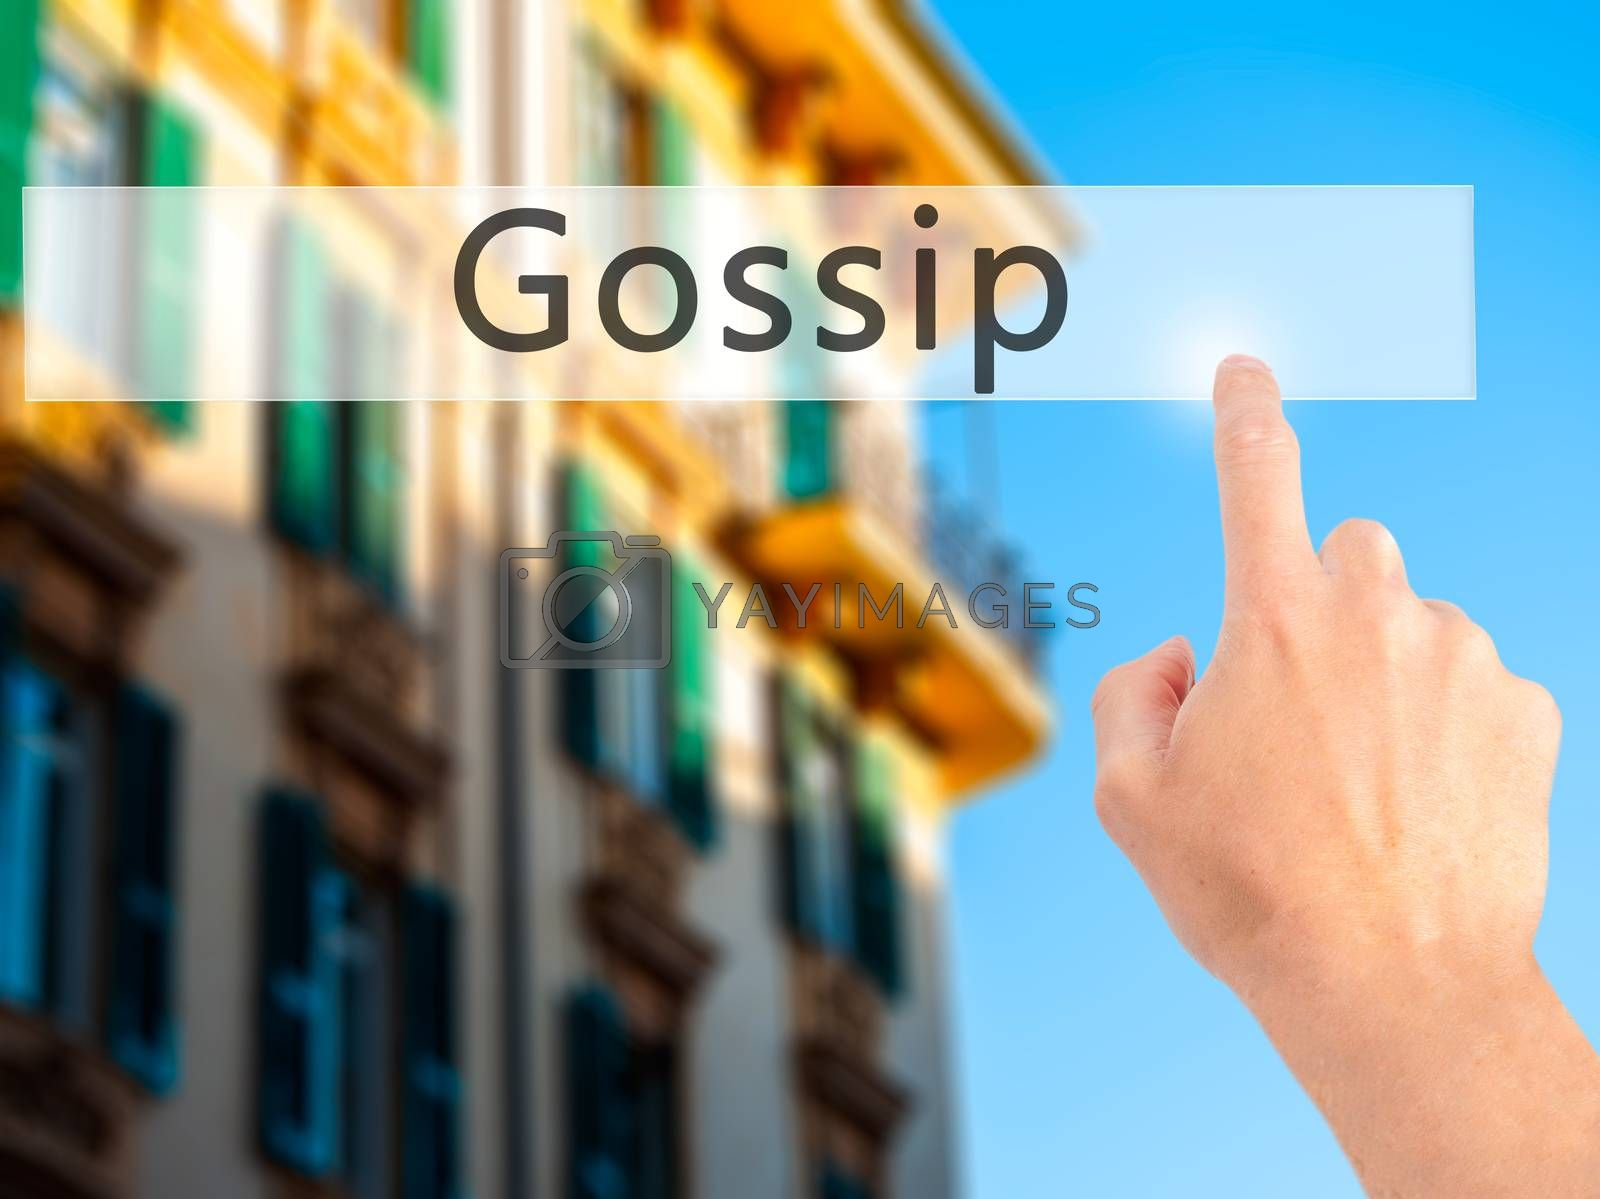 Gossip - Hand pressing a button on blurred background concept on by netsay.net